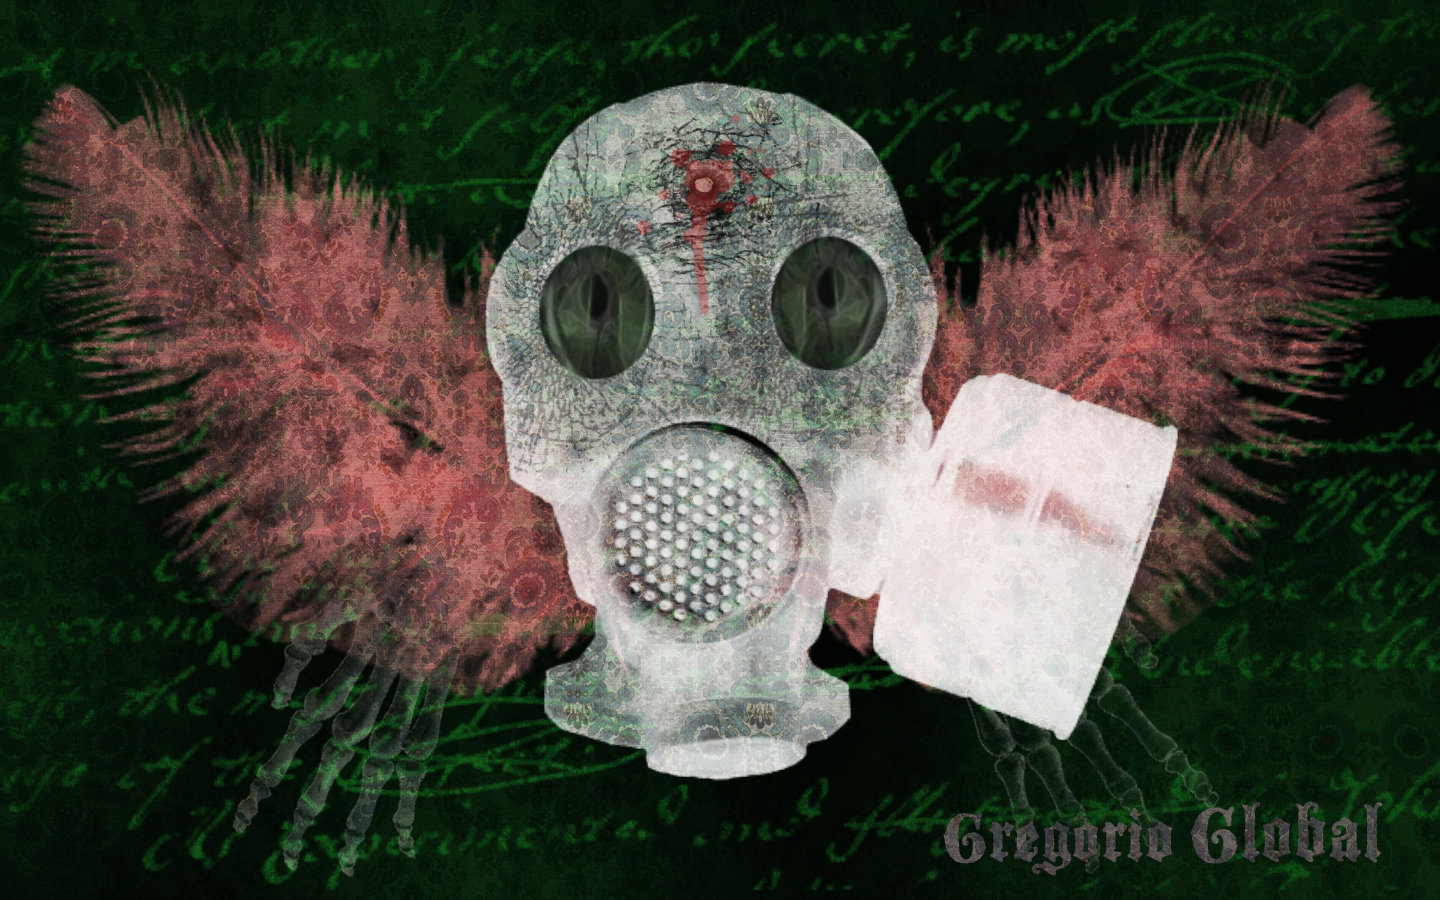 Free Gas Mask high quality wallpaper ID:161634 for hd 1440x900 desktop